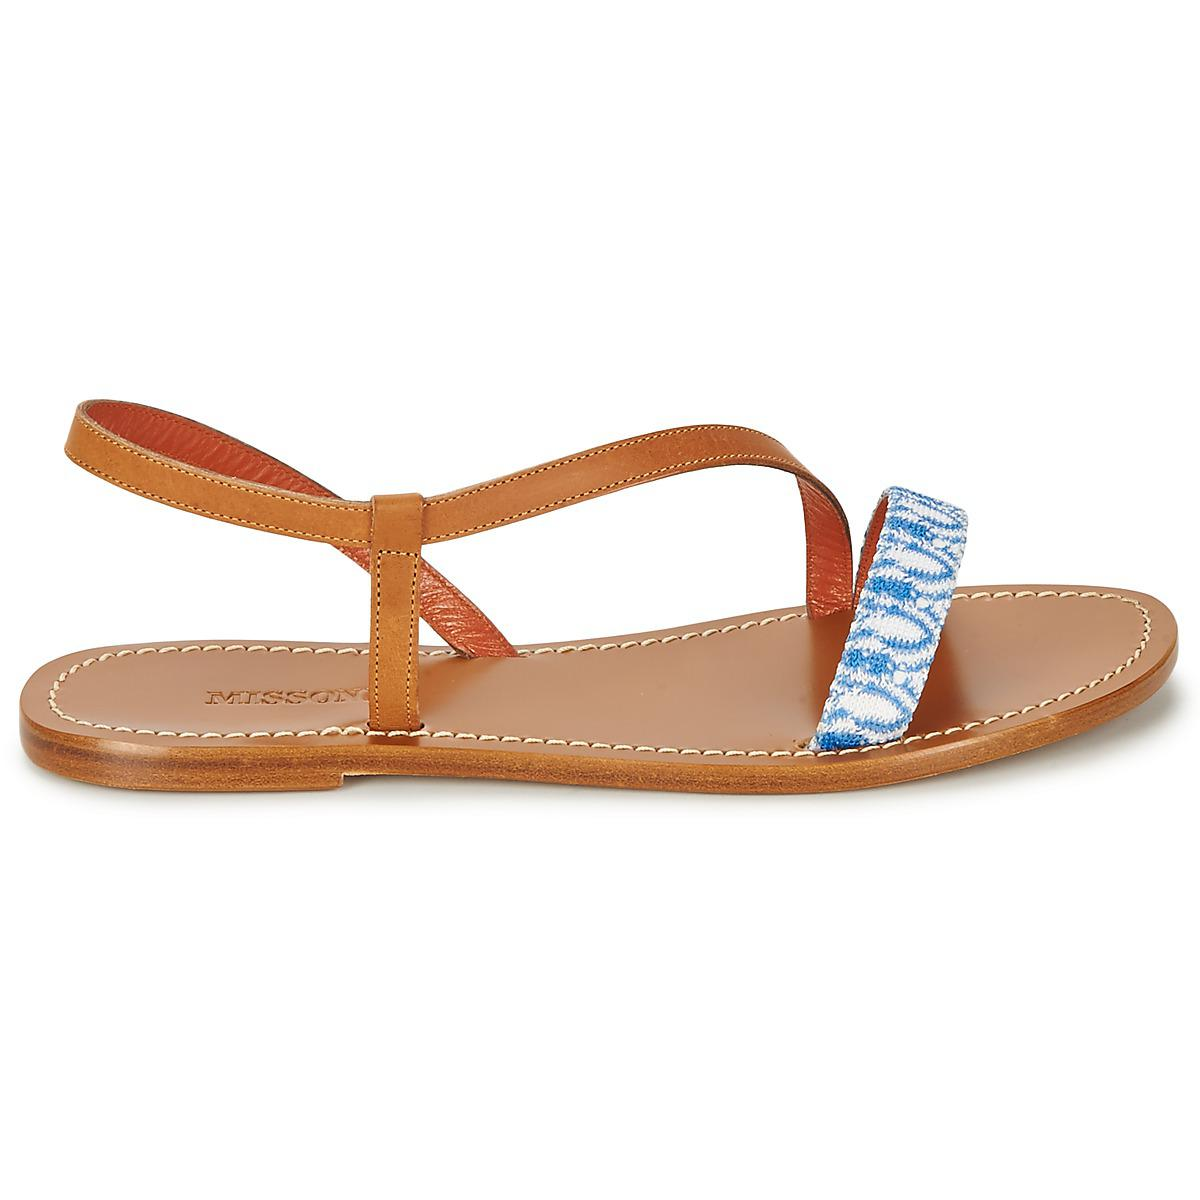 Missoni XM034 women's Sandals in Cheap Outlet Locations Really Online VZsBK7HN